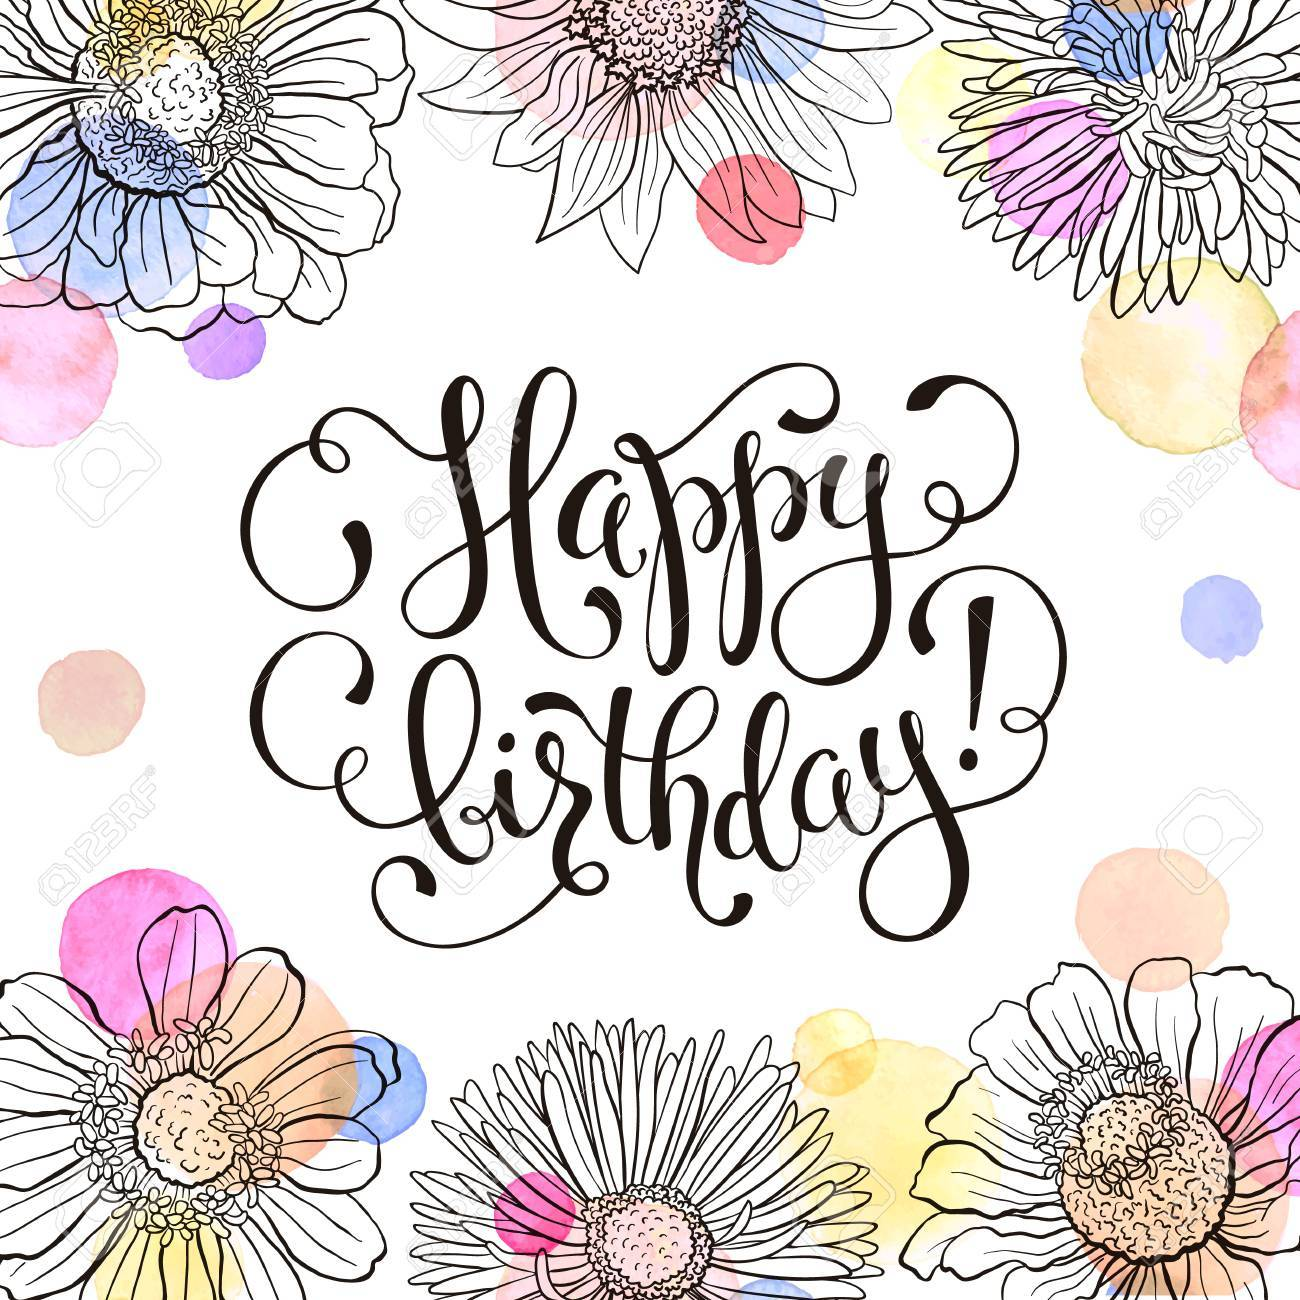 Happy Birthday Greeting Card Hand Drawn Flowers Frame With Watercolor On White Background